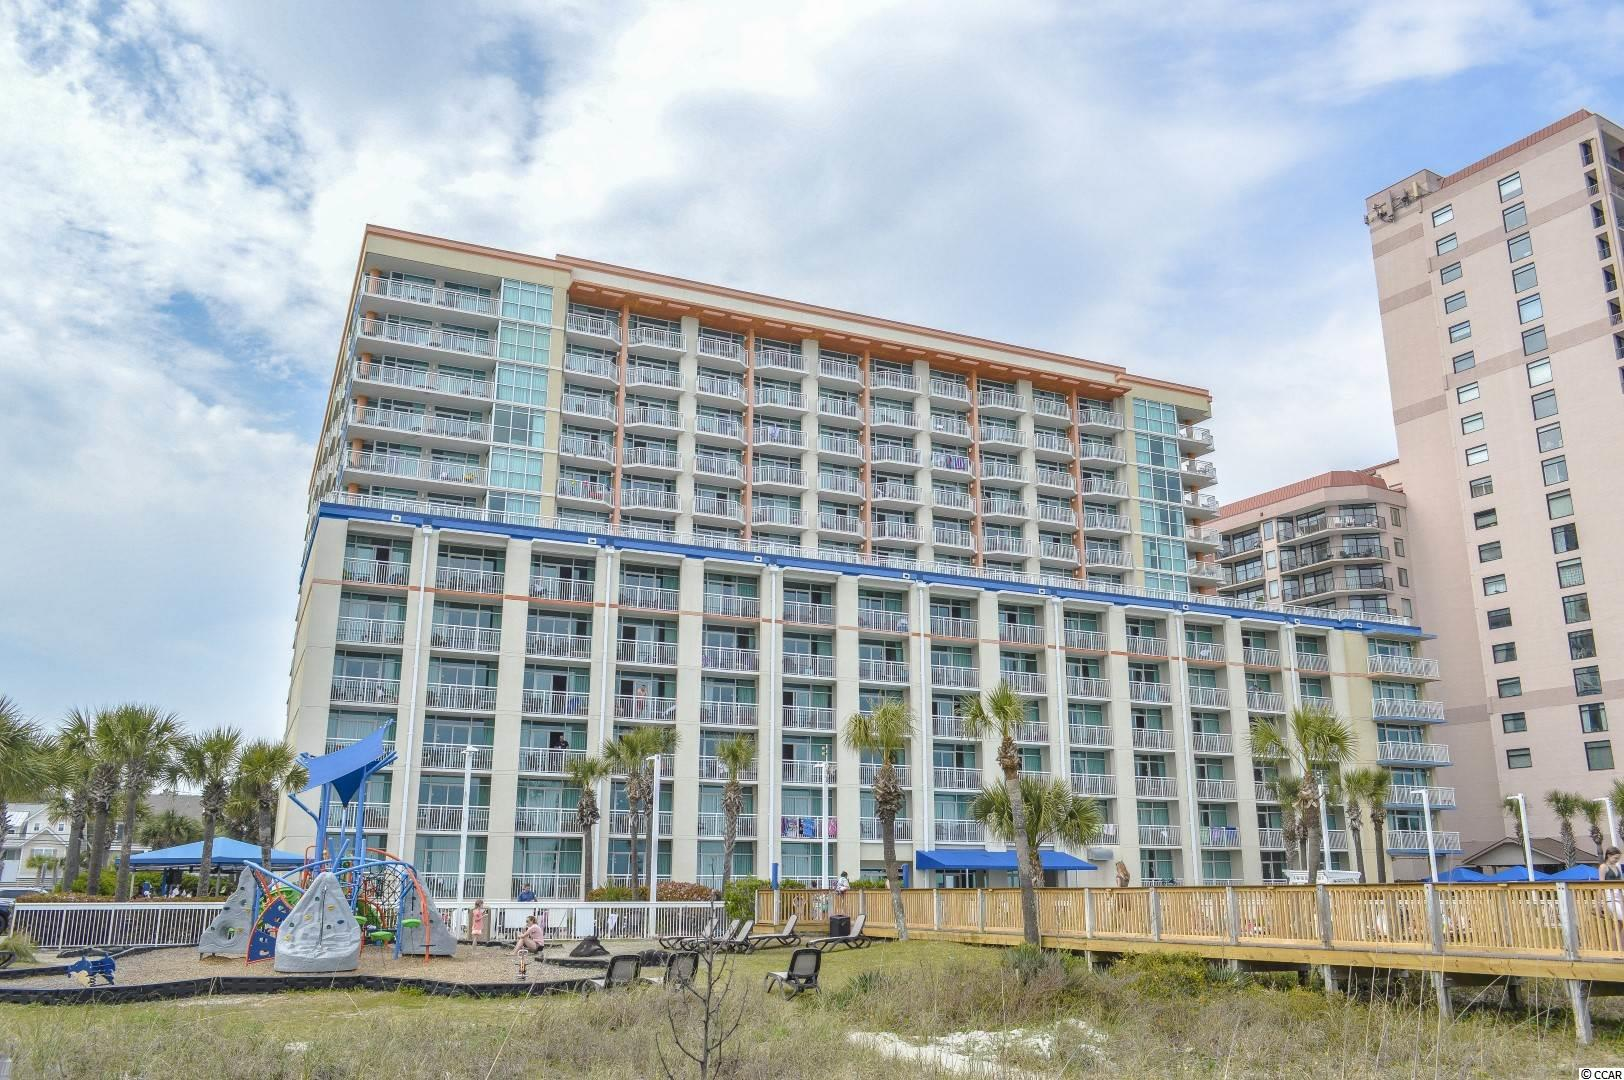 DIRECT OCEANFRONT 1 bedroom 1 bathroom unit in Dunes Village Resort. GREAT LOCATION on 53rd Avenue North & Ocean Boulevard close to major highway access, shopping, dining, golf, and everything downtown Myrtle Beach has to offer. Dunes Village features some of the best amenities on the oceanfront including indoor/outdoor pools, hot tubs, lazy rivers, pool slides, kids splash zone, fitness center,volleyball court, playground, serenity spa, and on-site dining at the Admirals Room, Captains Cafe, Perk's Up Coffee Shop, and their seasonal cabana tiki bar and pool side grill. Unit is located on the 8th floor and is up to current on-site rental standards. Strong rental history & priced to sell - schedule your private showing today!